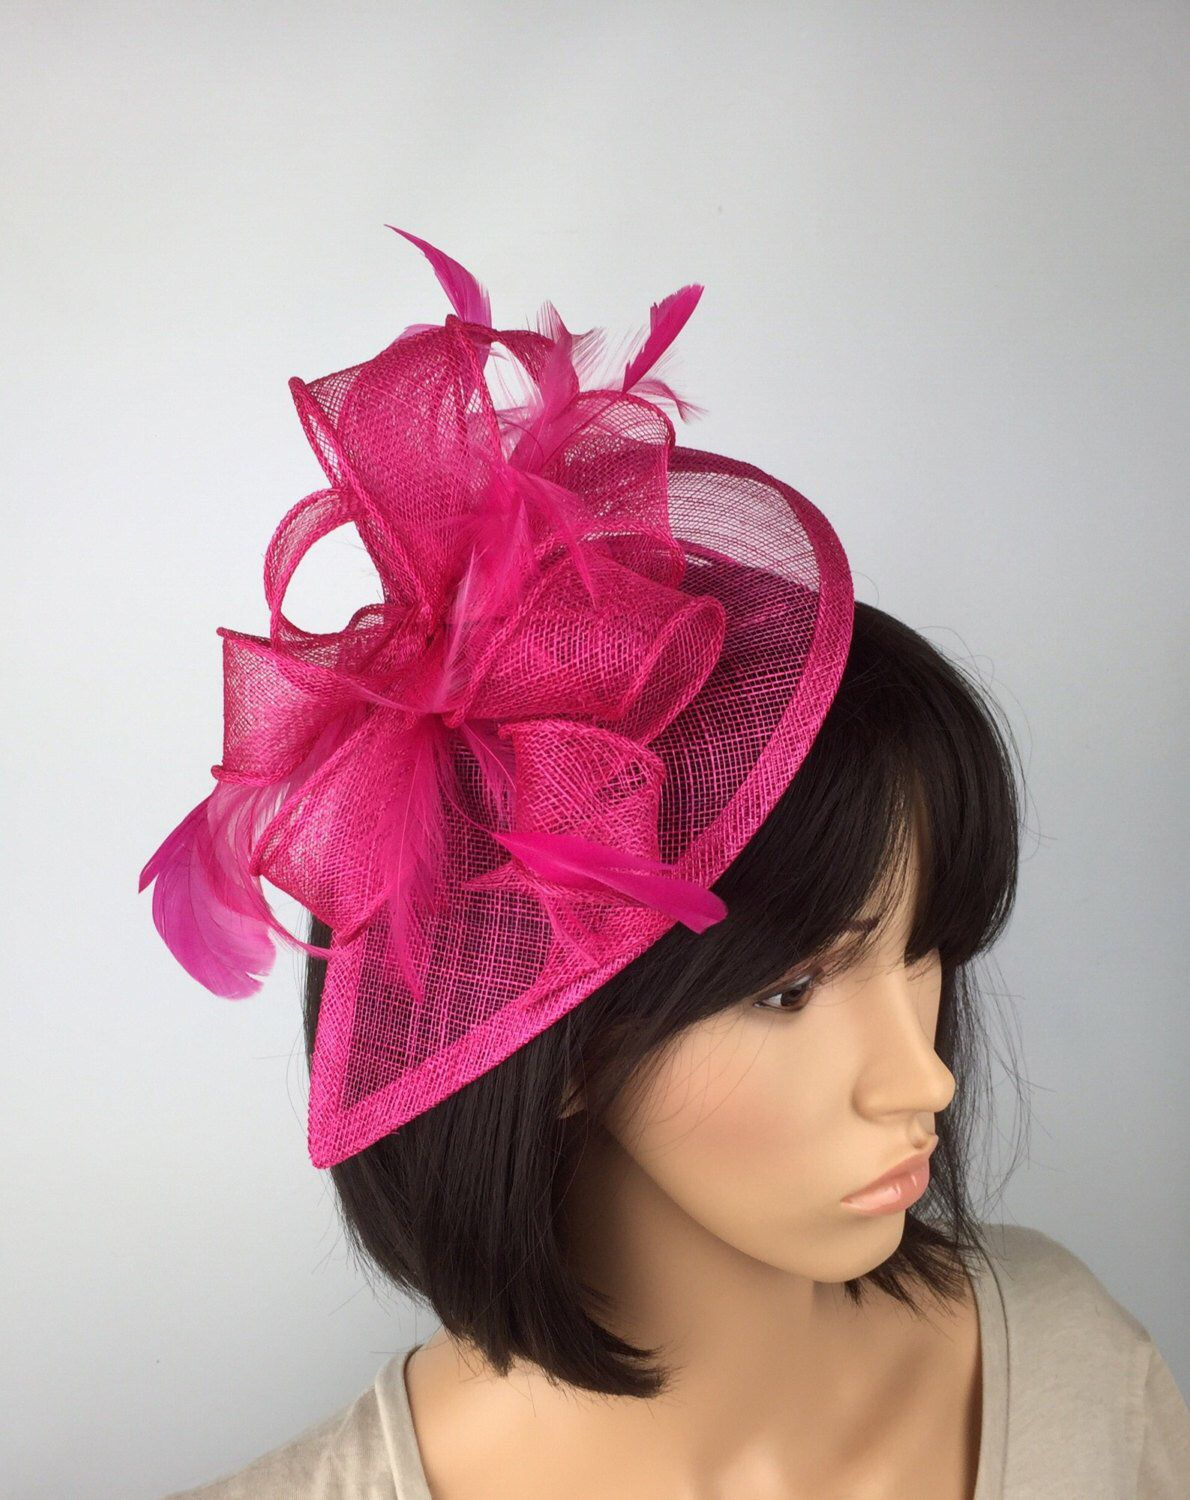 Etsy Fuchsia Pink Hot Fascinator Sinamay Wedding Mother Of The Bride Las Day Ascot Races Occasion Event Accessories Weddings